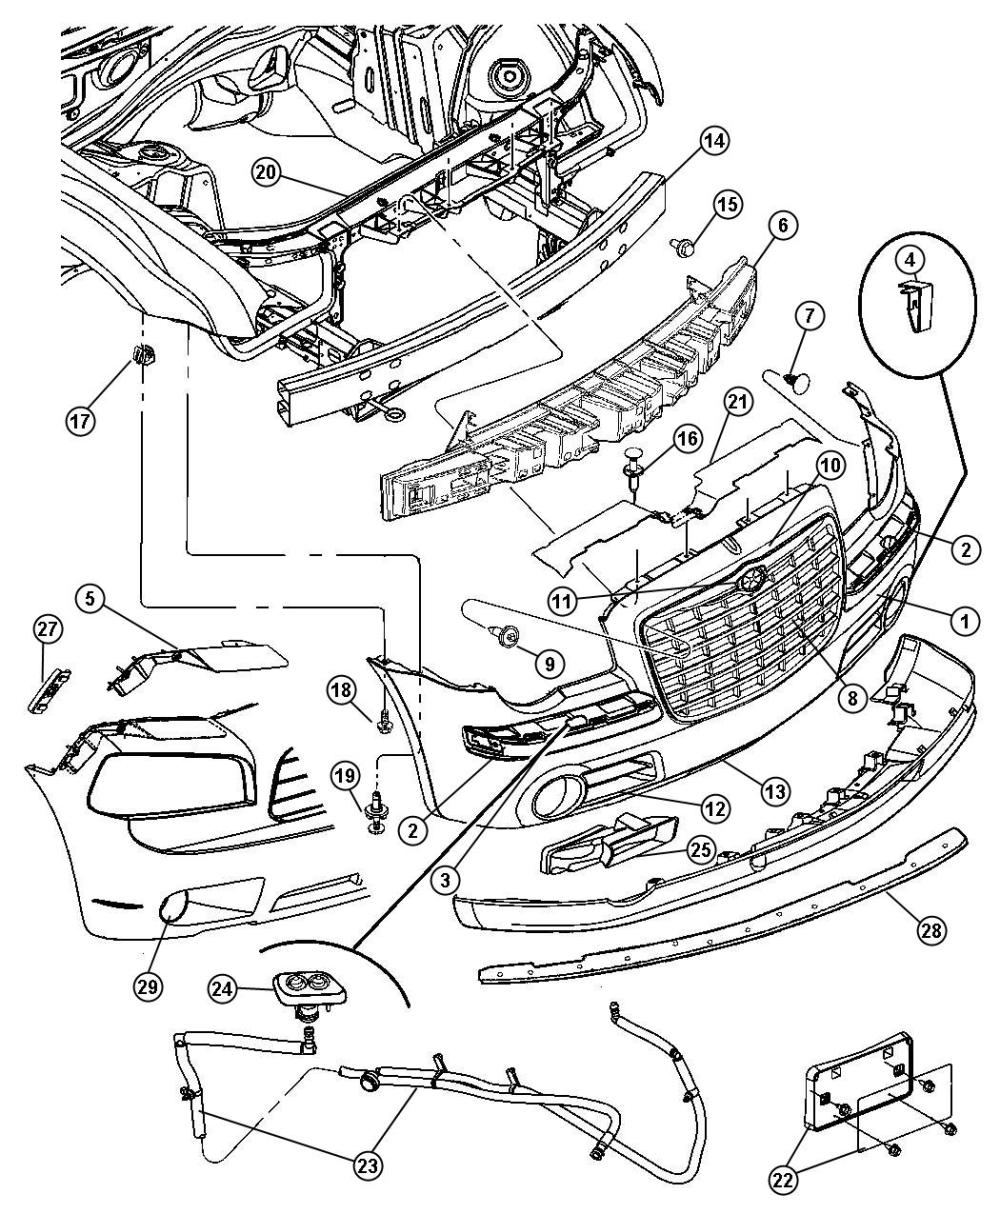 medium resolution of chrysler town and country parts diagram car interior design diagram of courtroom diagram of county water